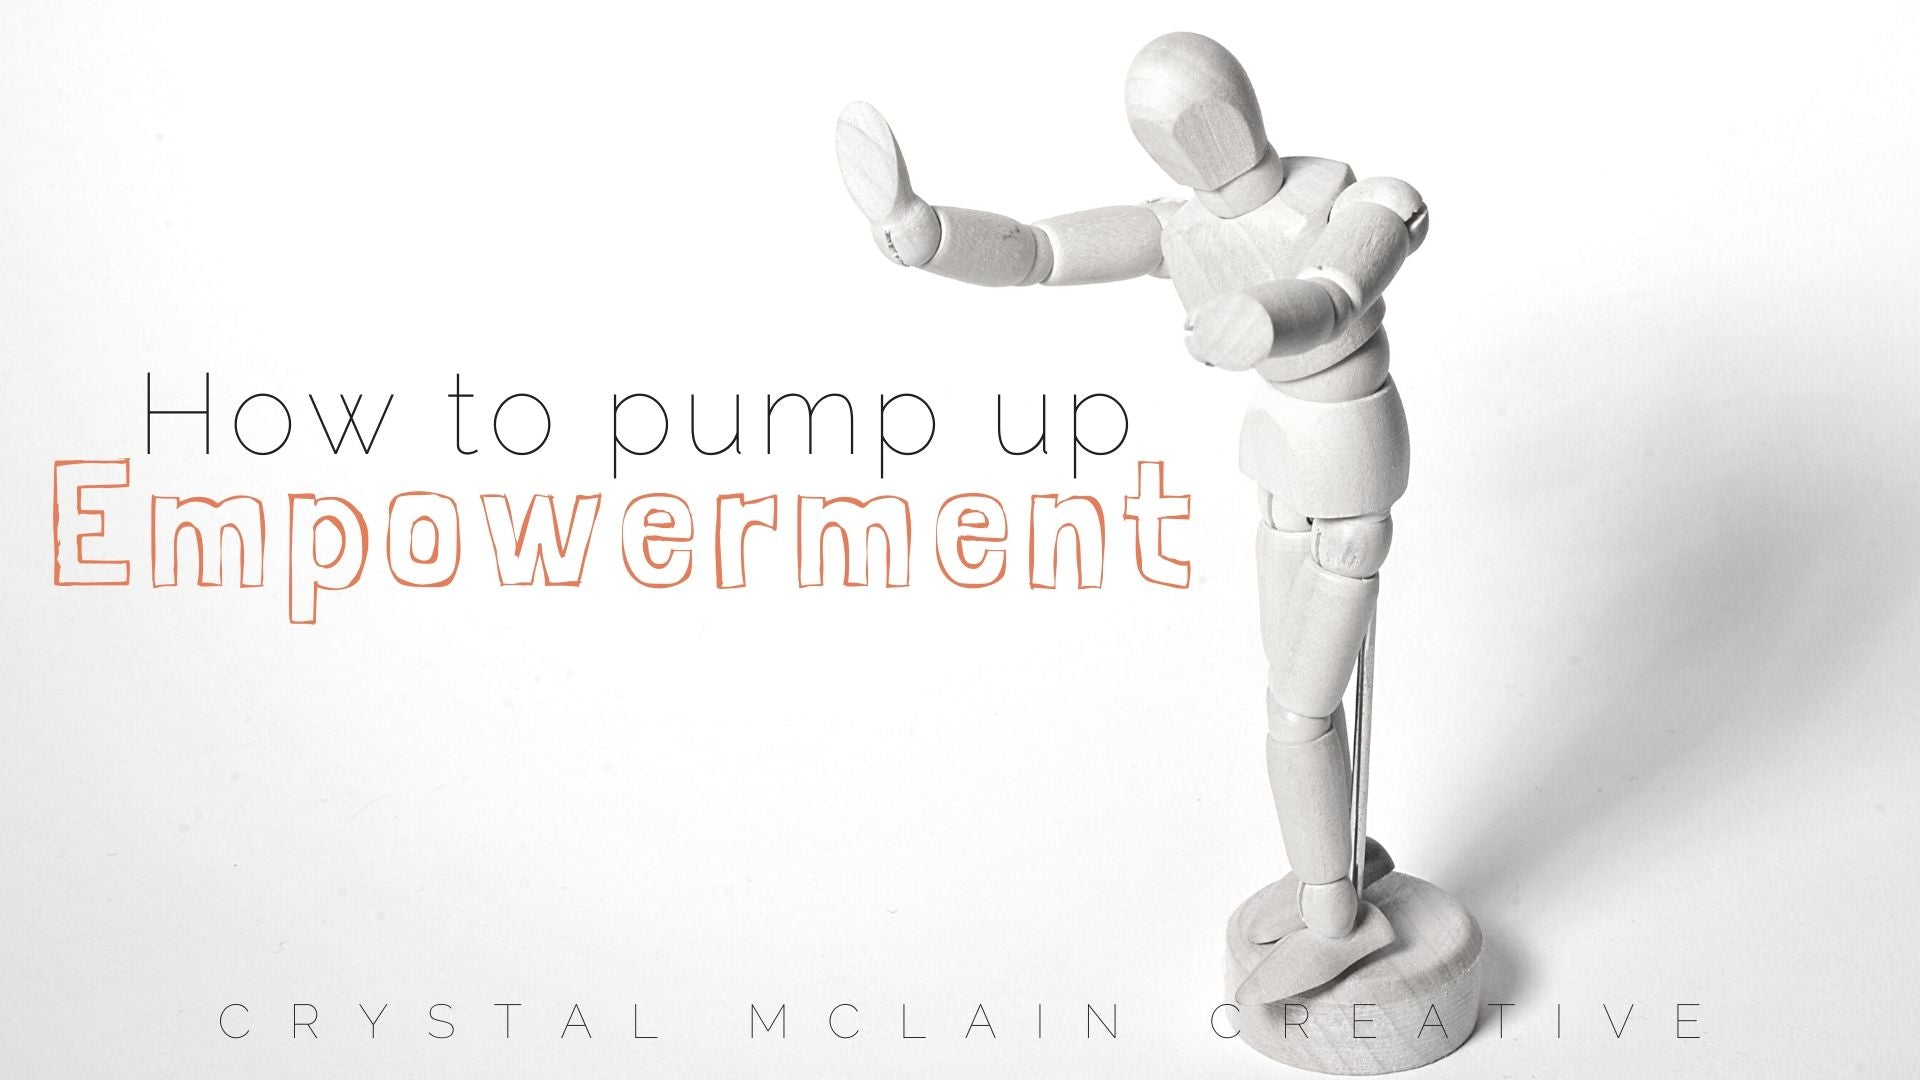 HOW TO PUMP UP EMPOWERMENT SELF CARE BLOG CRYSTAL MCLAIN CREATIVE